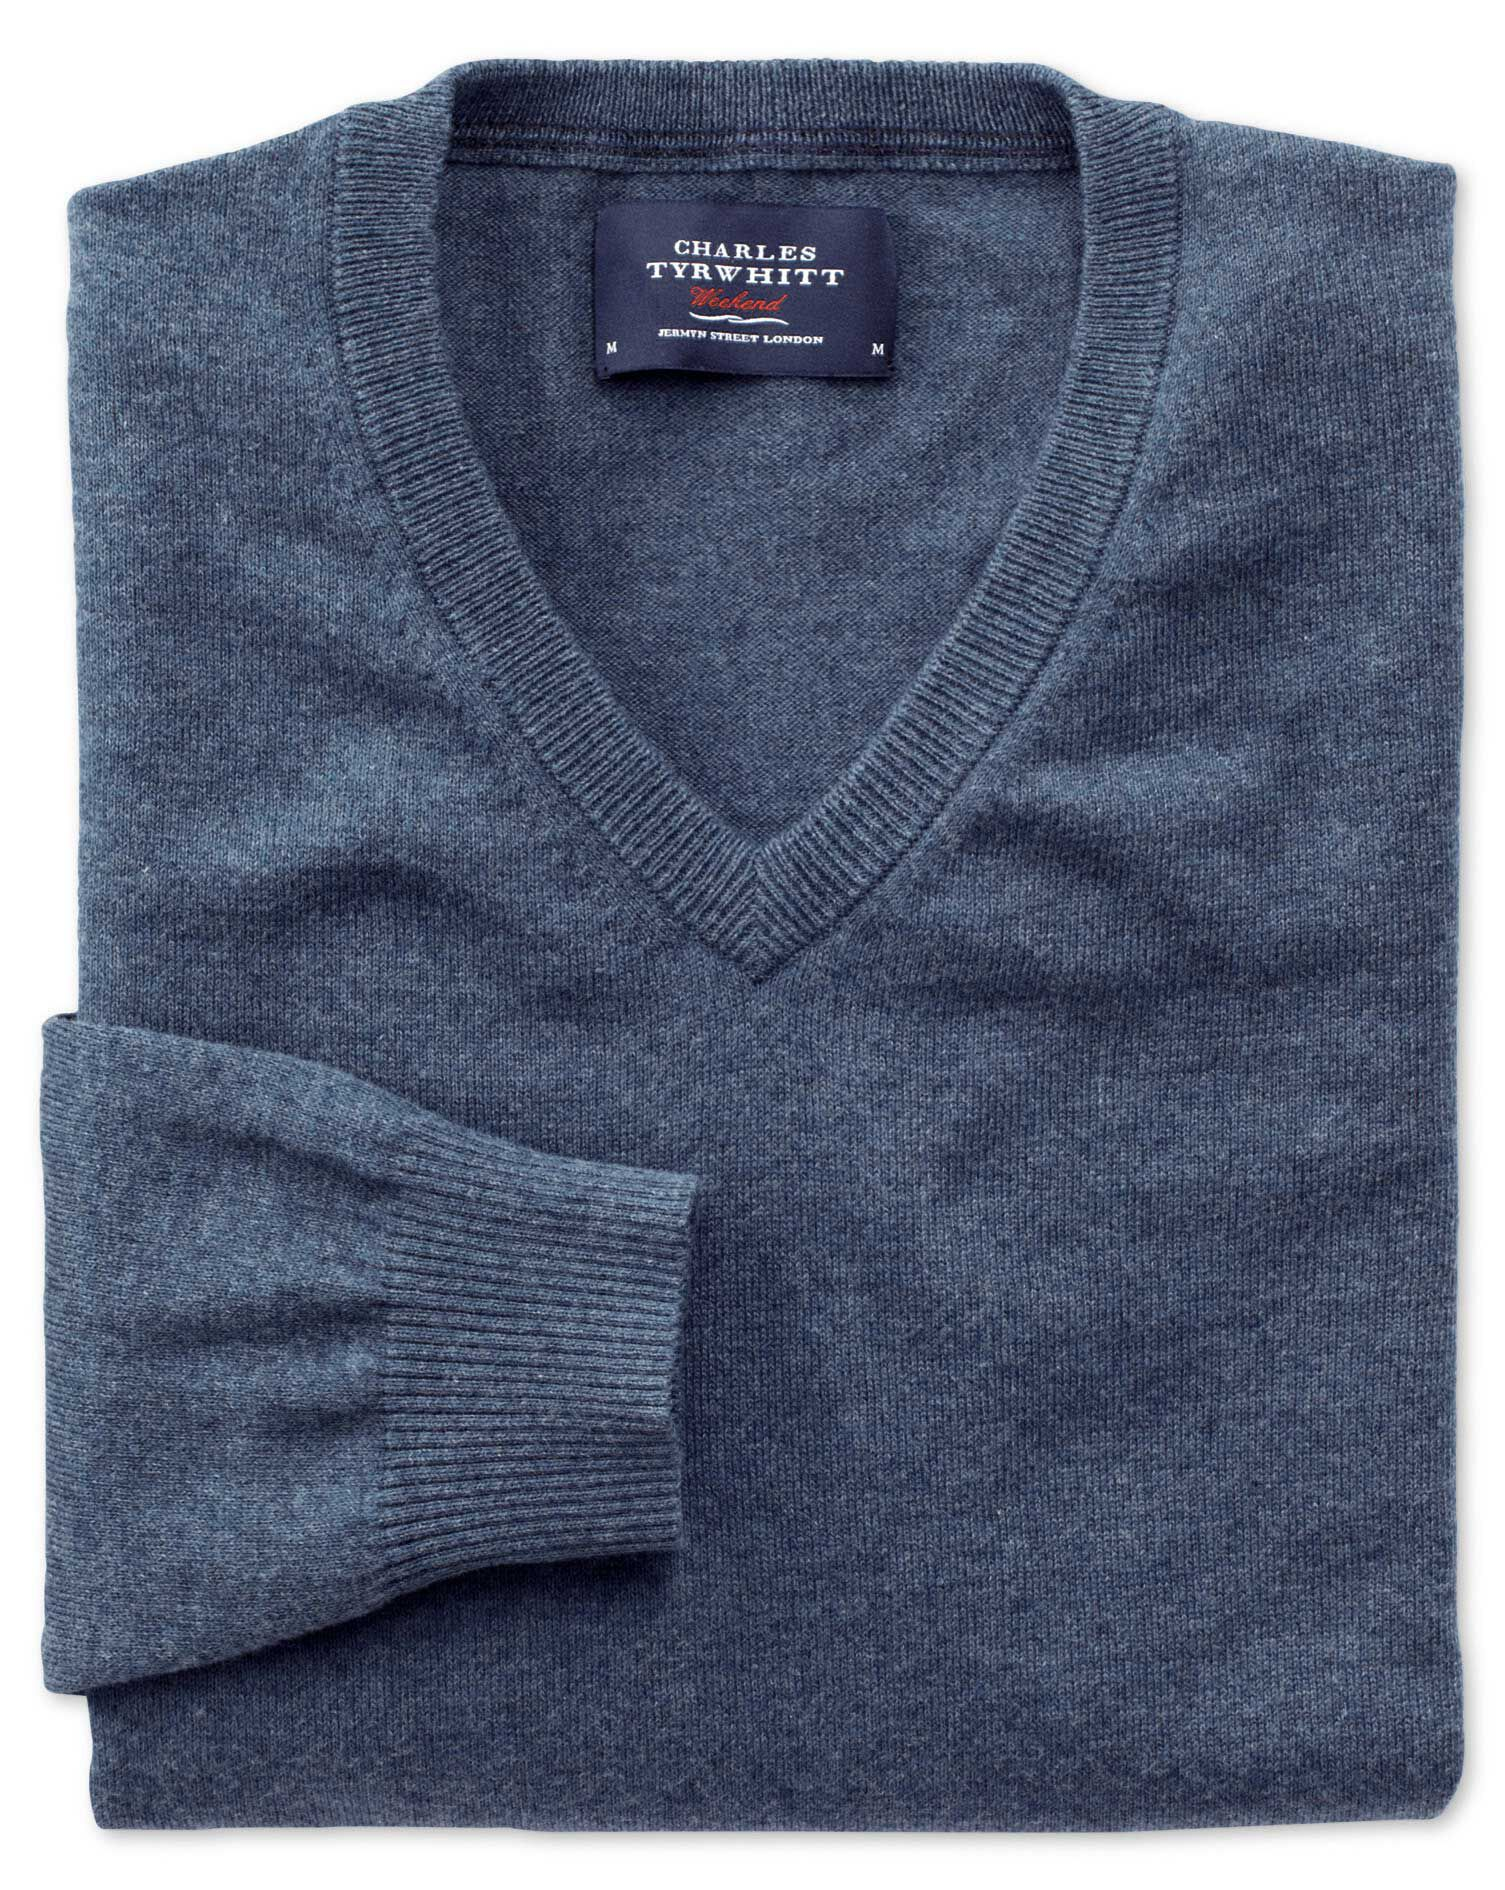 Blue Cotton Cashmere V-Neck Jumper Size Large by Charles Tyrwhitt